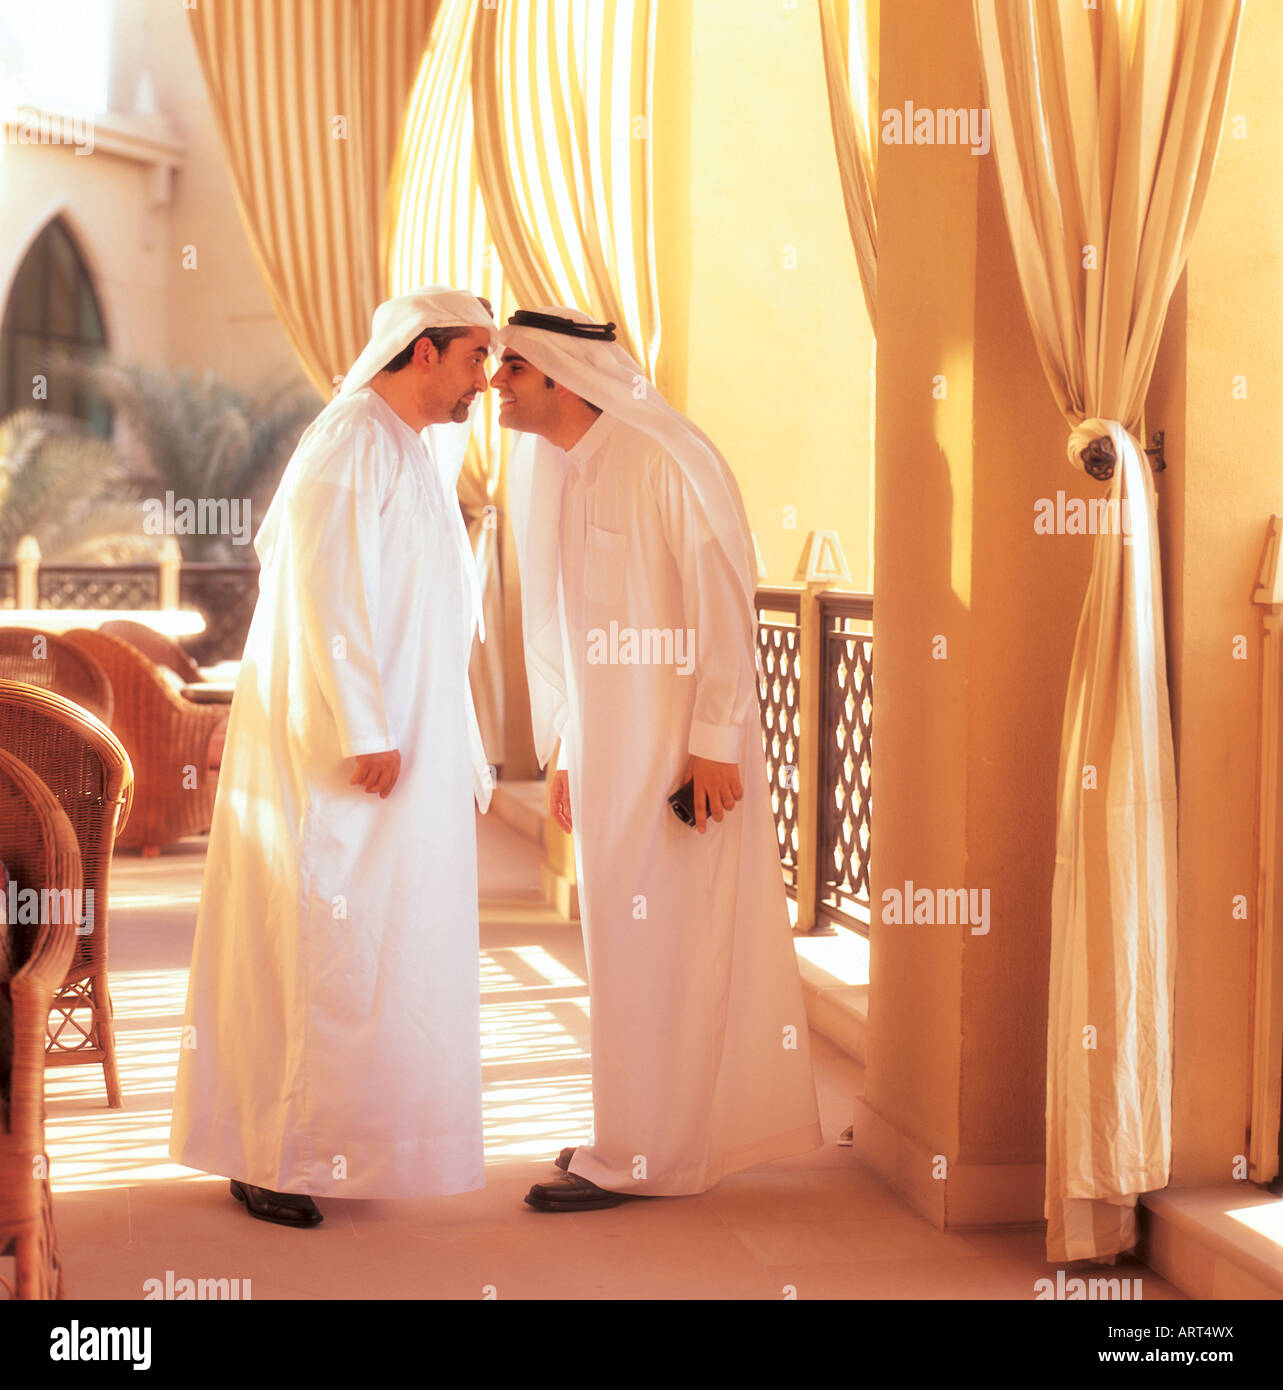 Rub noses stock photos rub noses stock images alamy arab men rubbing their noses traditional greeting stock image m4hsunfo